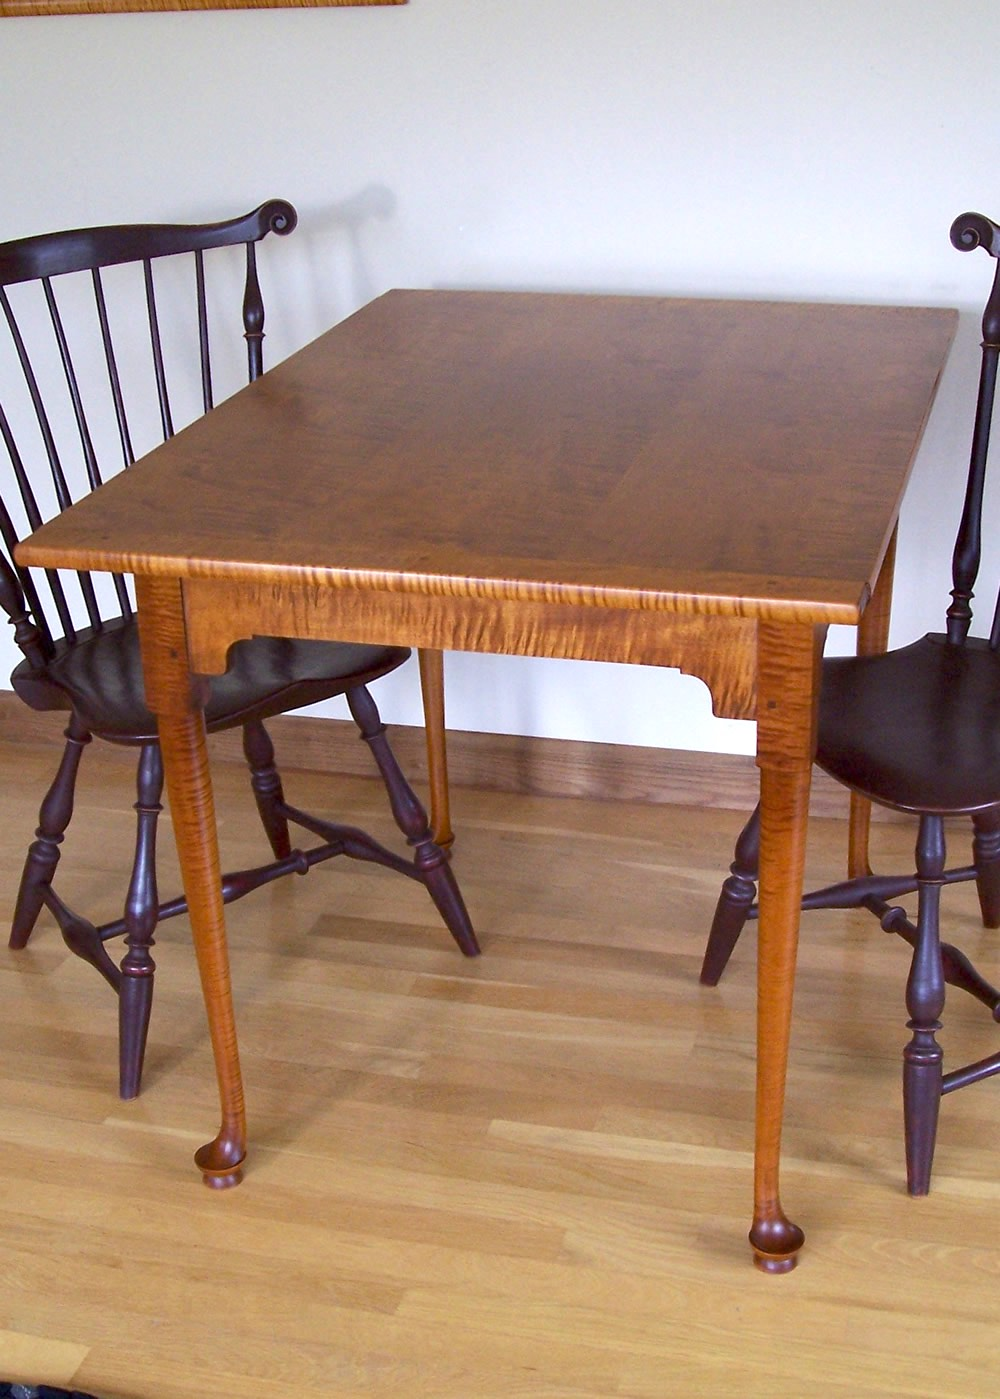 Cherry dining table Windsor Chairs